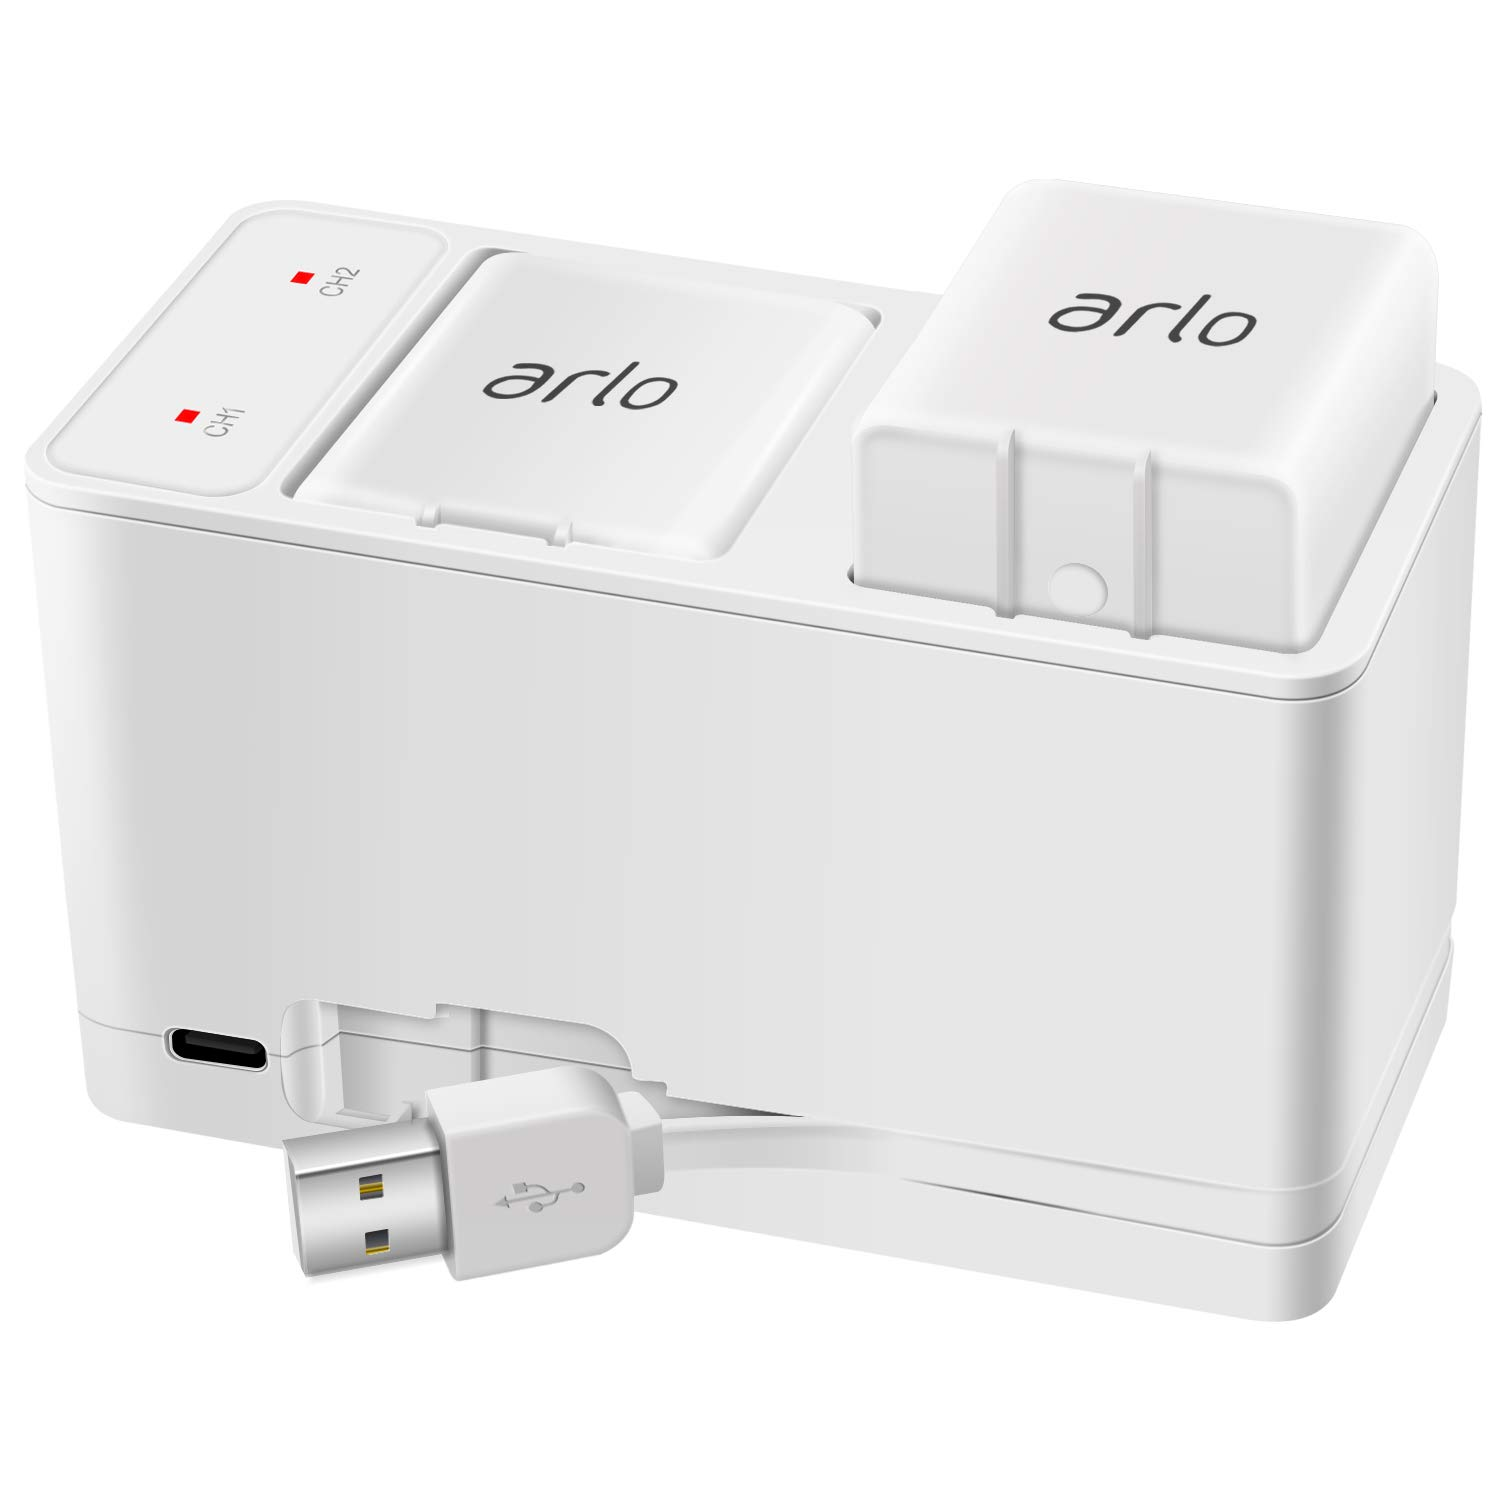 Arlo Charger Arlo Battery Charger Pro Charger Batteries Charging Stations Accessories for Arlo Pro/Pro 2/Go Camera VMA4410 VMA4400C VMA4400 by Ponkor